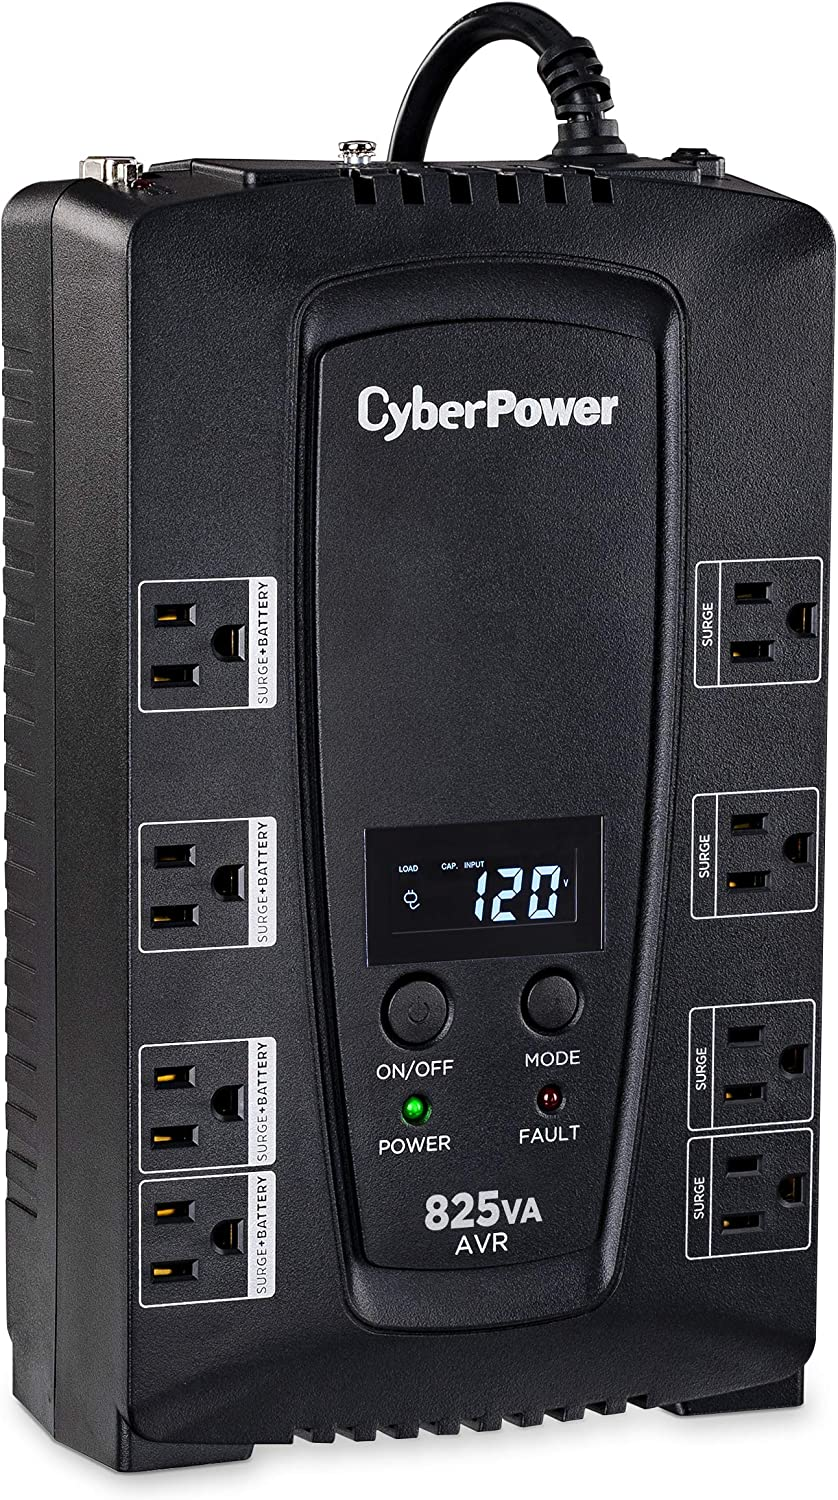 CyberPower CP825AVRLCD Intelligent LCD UPS System, 825VA/450W, 8 Outlets, AVR, Compact